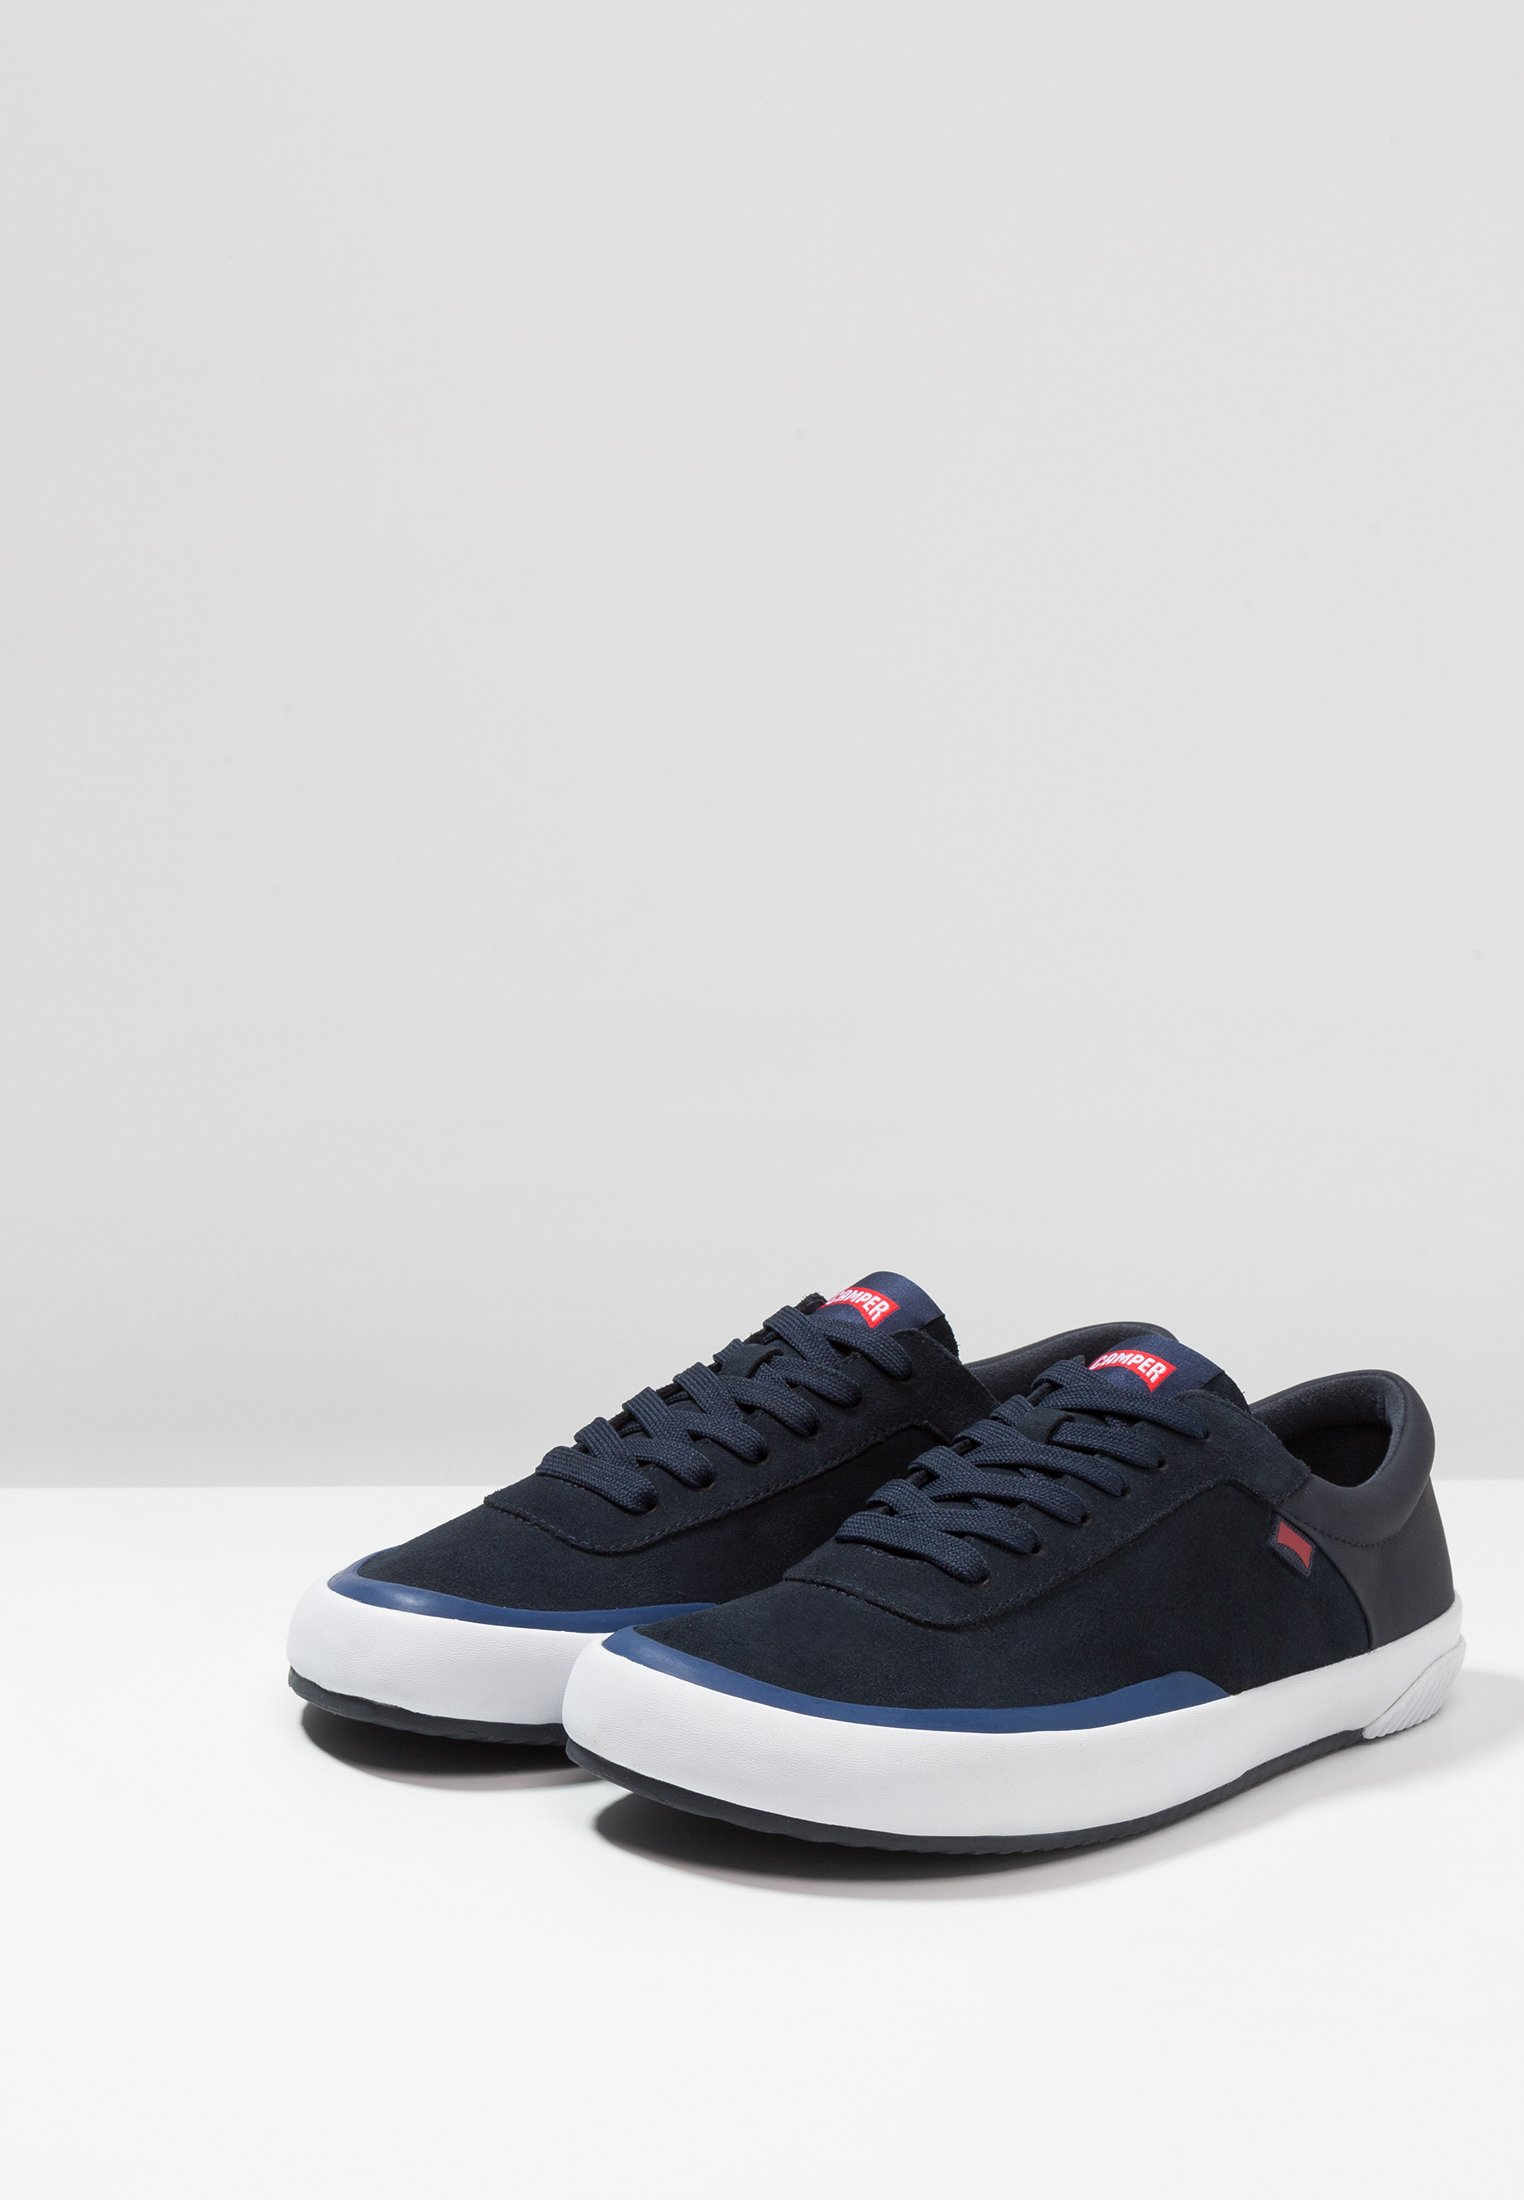 Camper Peuv - Sneaker Low Dark Blue Black Friday